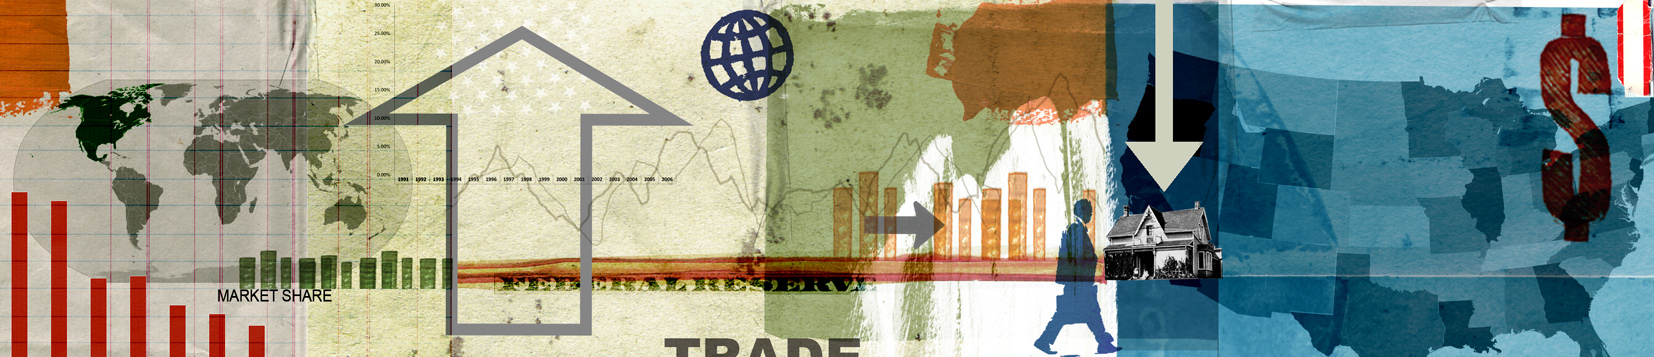 Trade Regulation USA Global Economy The Economist